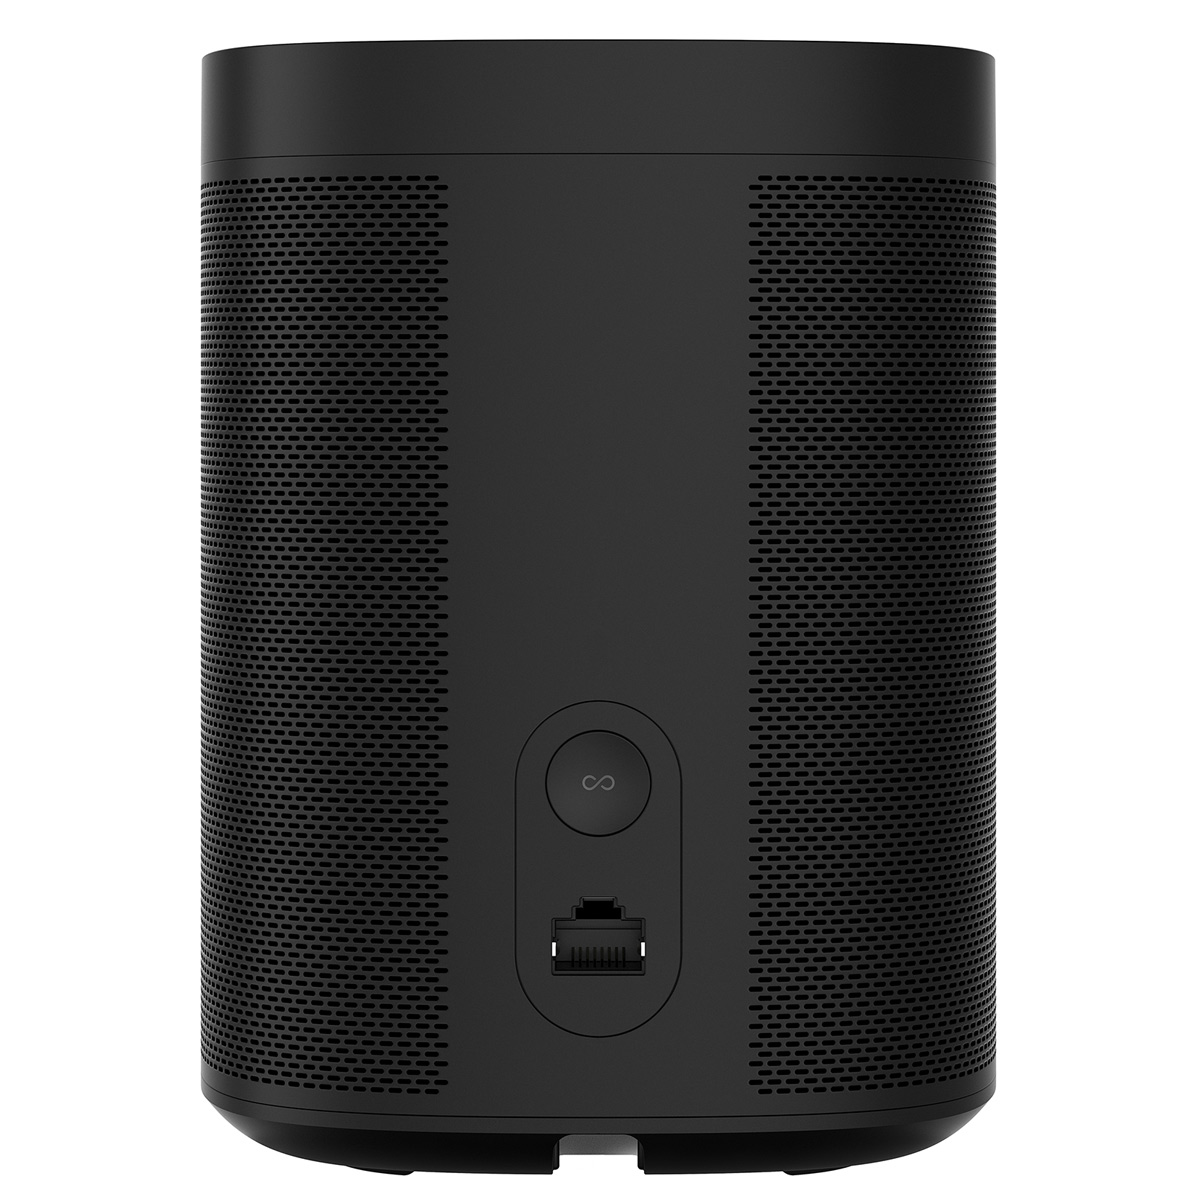 Sonos-Two-Room-Set-with-Sonos-One-Gen-2-Smart-Speaker-with-Alexa-Voice-Control thumbnail 8